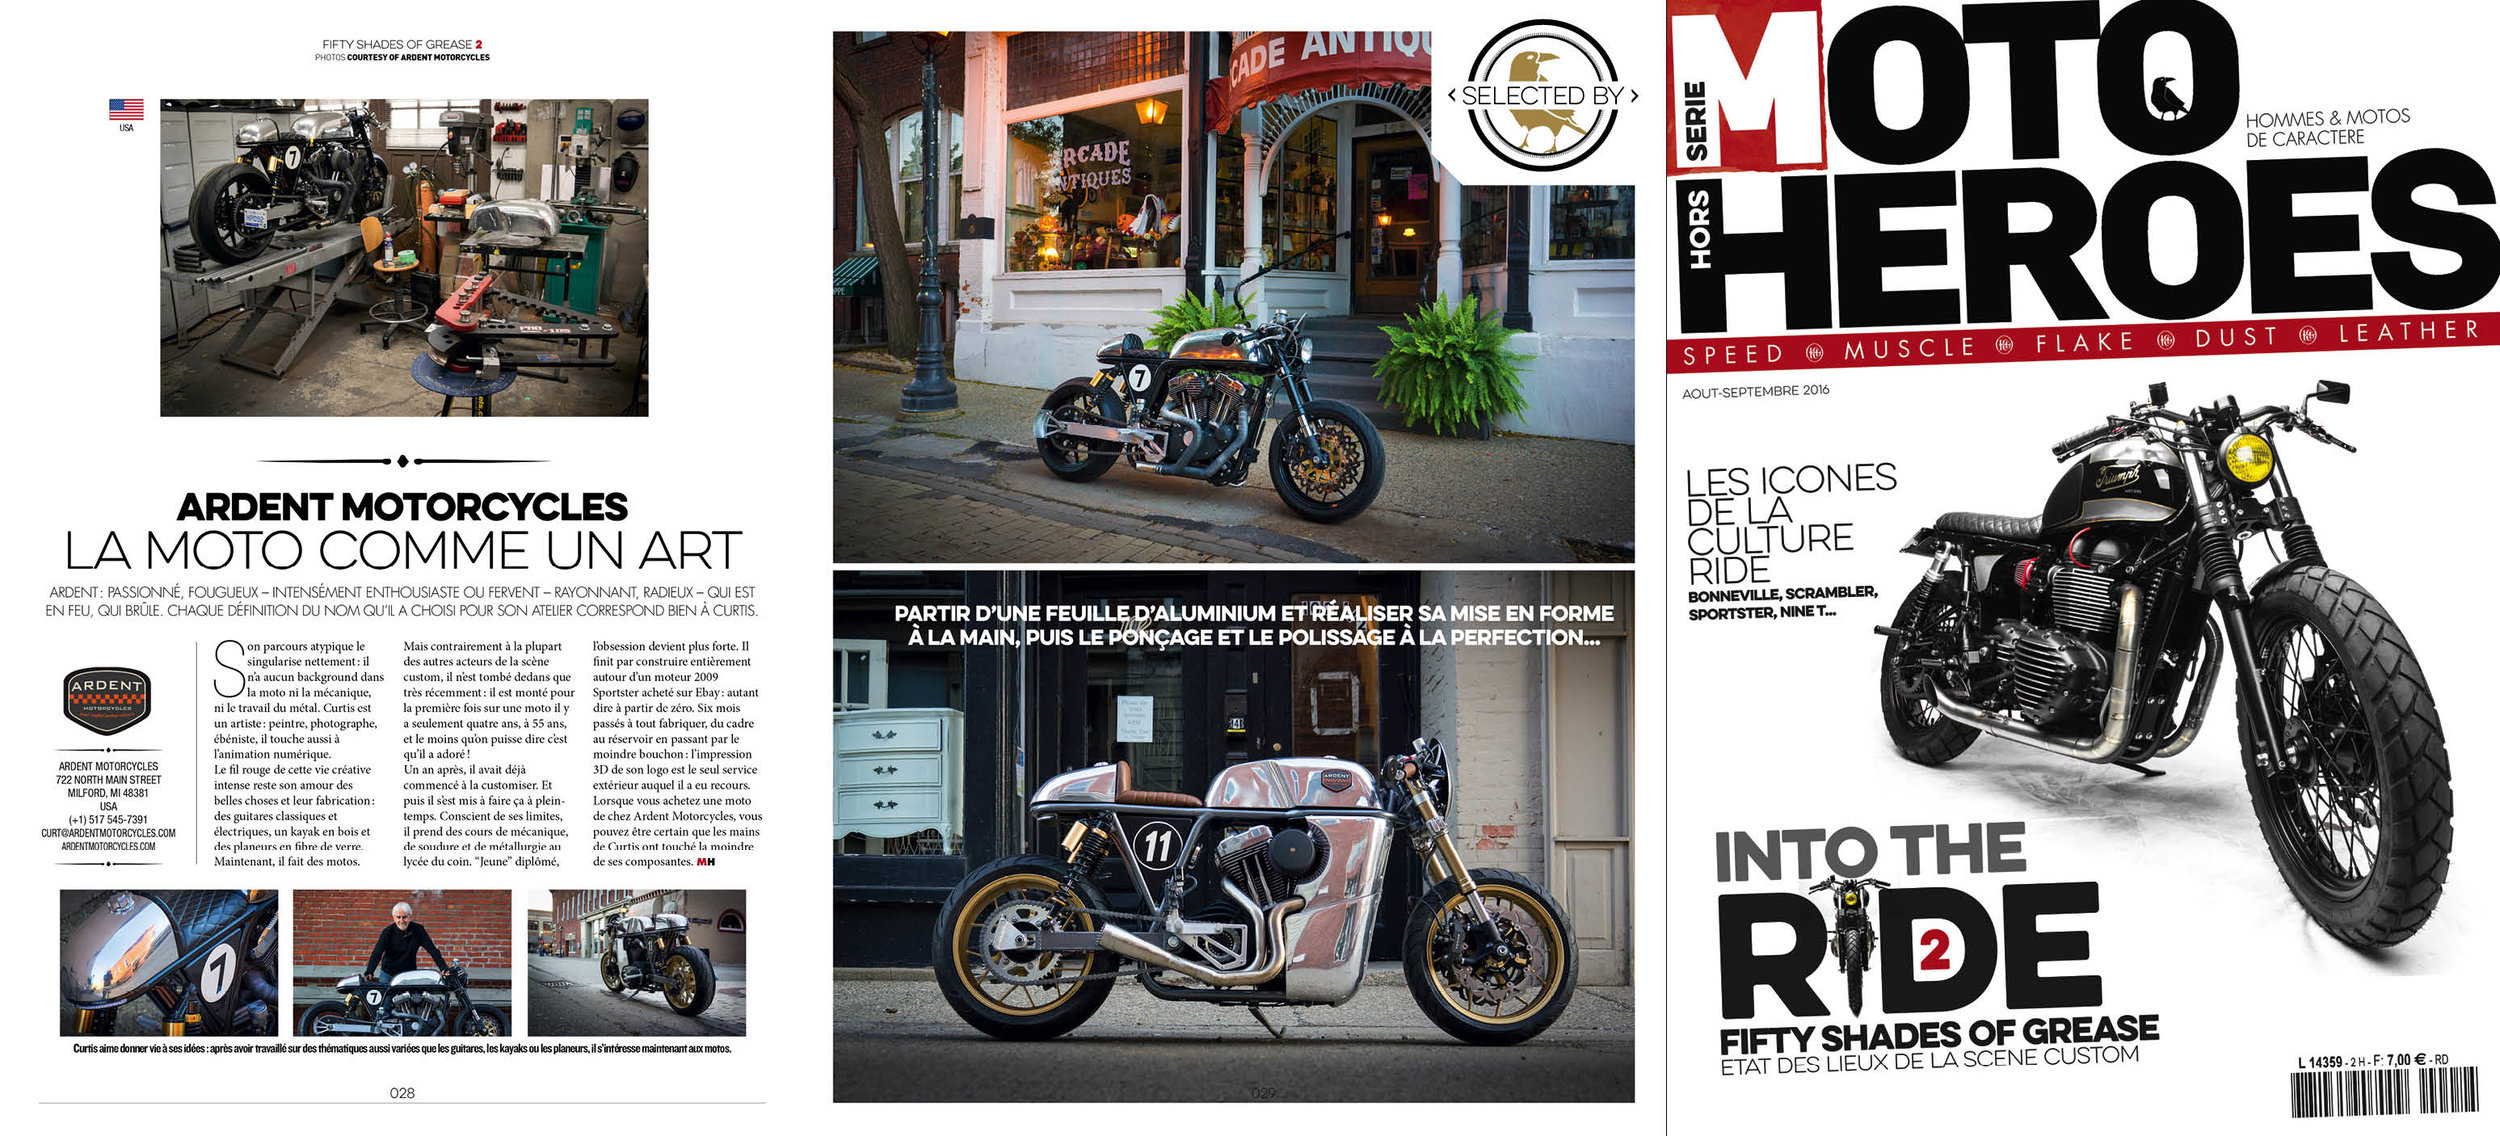 Here's the spread in Moto Heroes